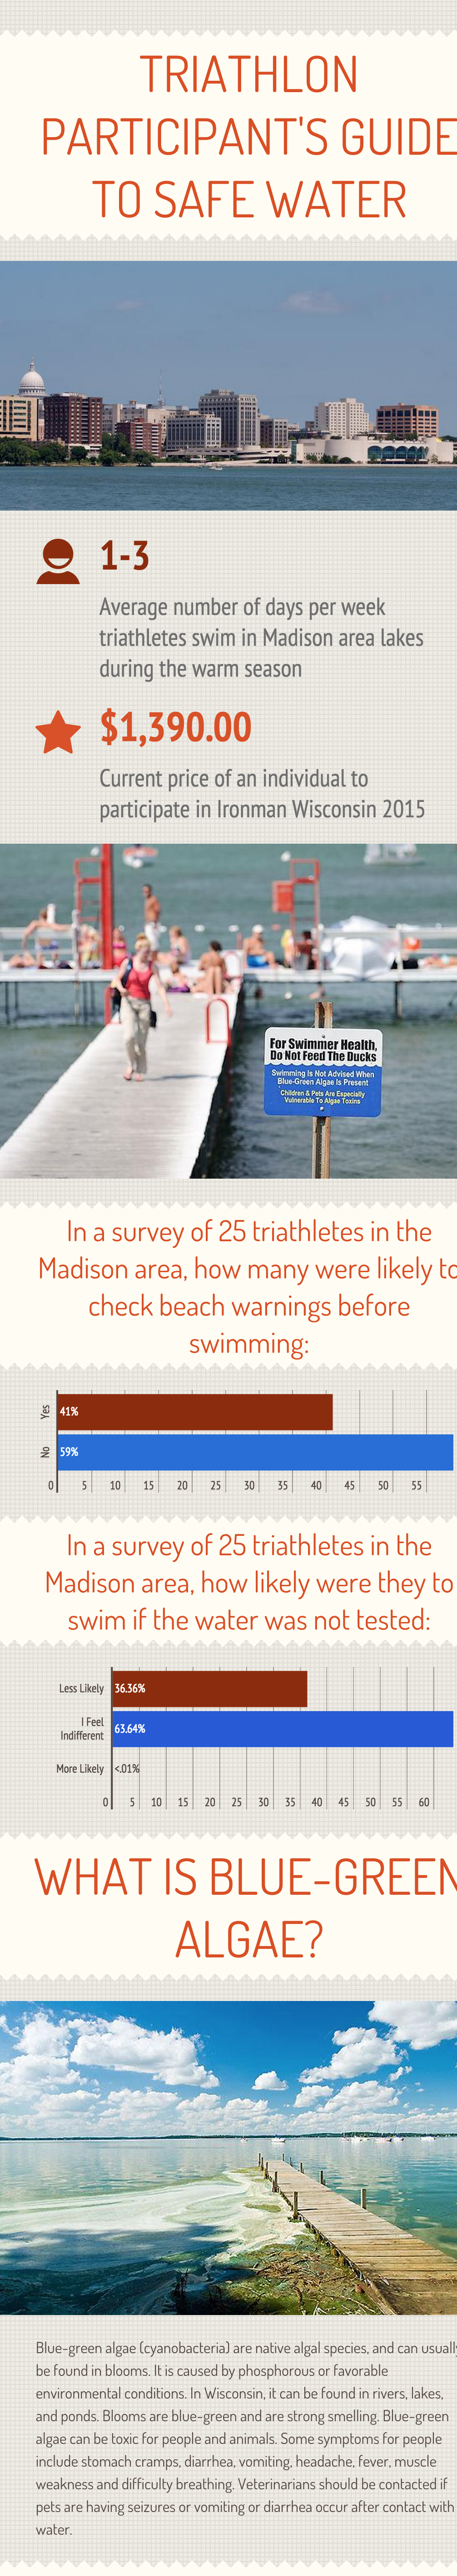 Triathlon participant's guide to safe water - Infogram, charts   infographics